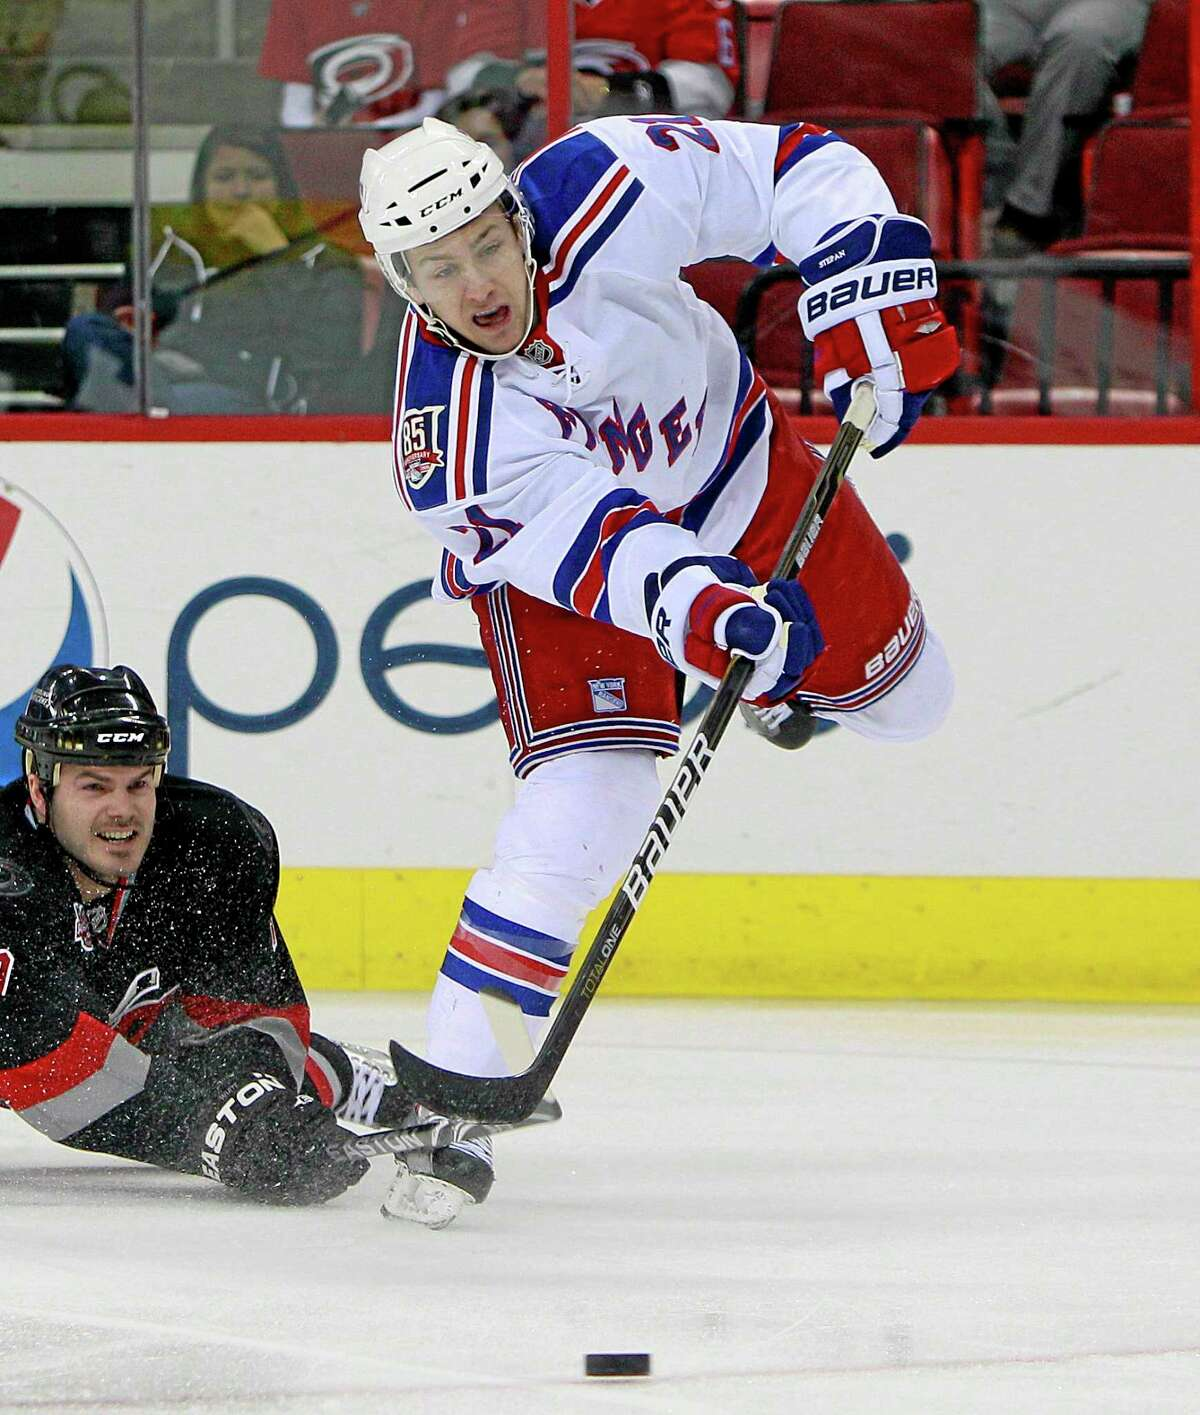 The New York Rangers' Derek Stepan is back in the fold with the Rangers, agreeing to a two-year contract that should have him back on the ice in time for the season opener. A contract was finally worked out Thursday, one week before the Rangers start the regular season at Phoenix.